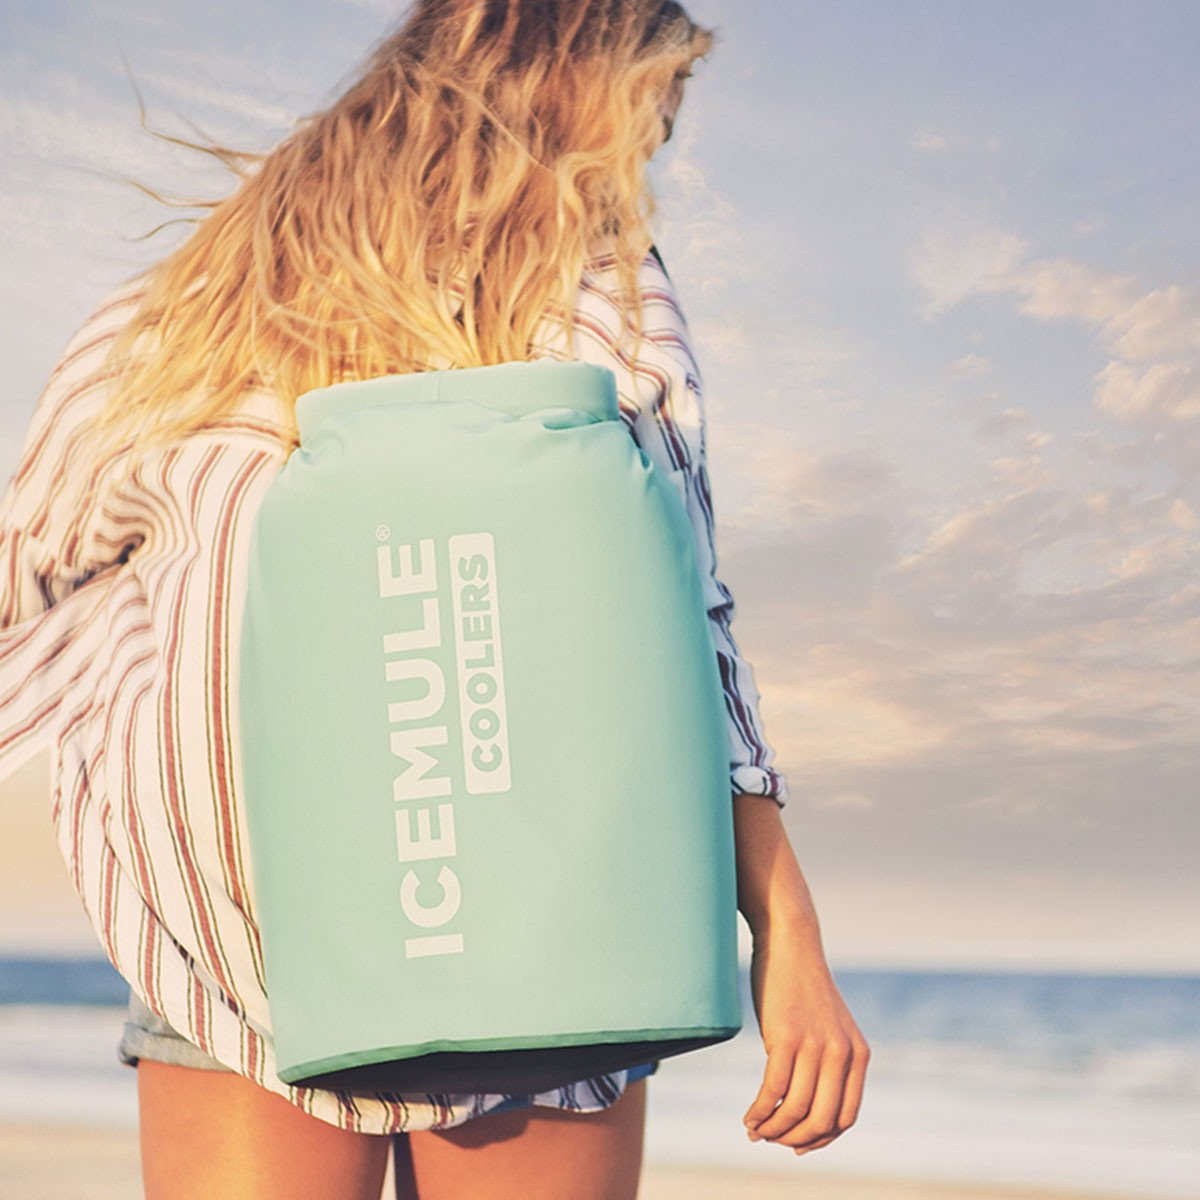 Love drinking an ice cold beer on the beach but hate lugging a cooler down there? We get it! Luckily though, the  IceMule  backpack cooler is so light and easy to carry. Between our crazy wedding schedule we have found time to squeeze in a beach trip, and we never forget to bring this cooler along!